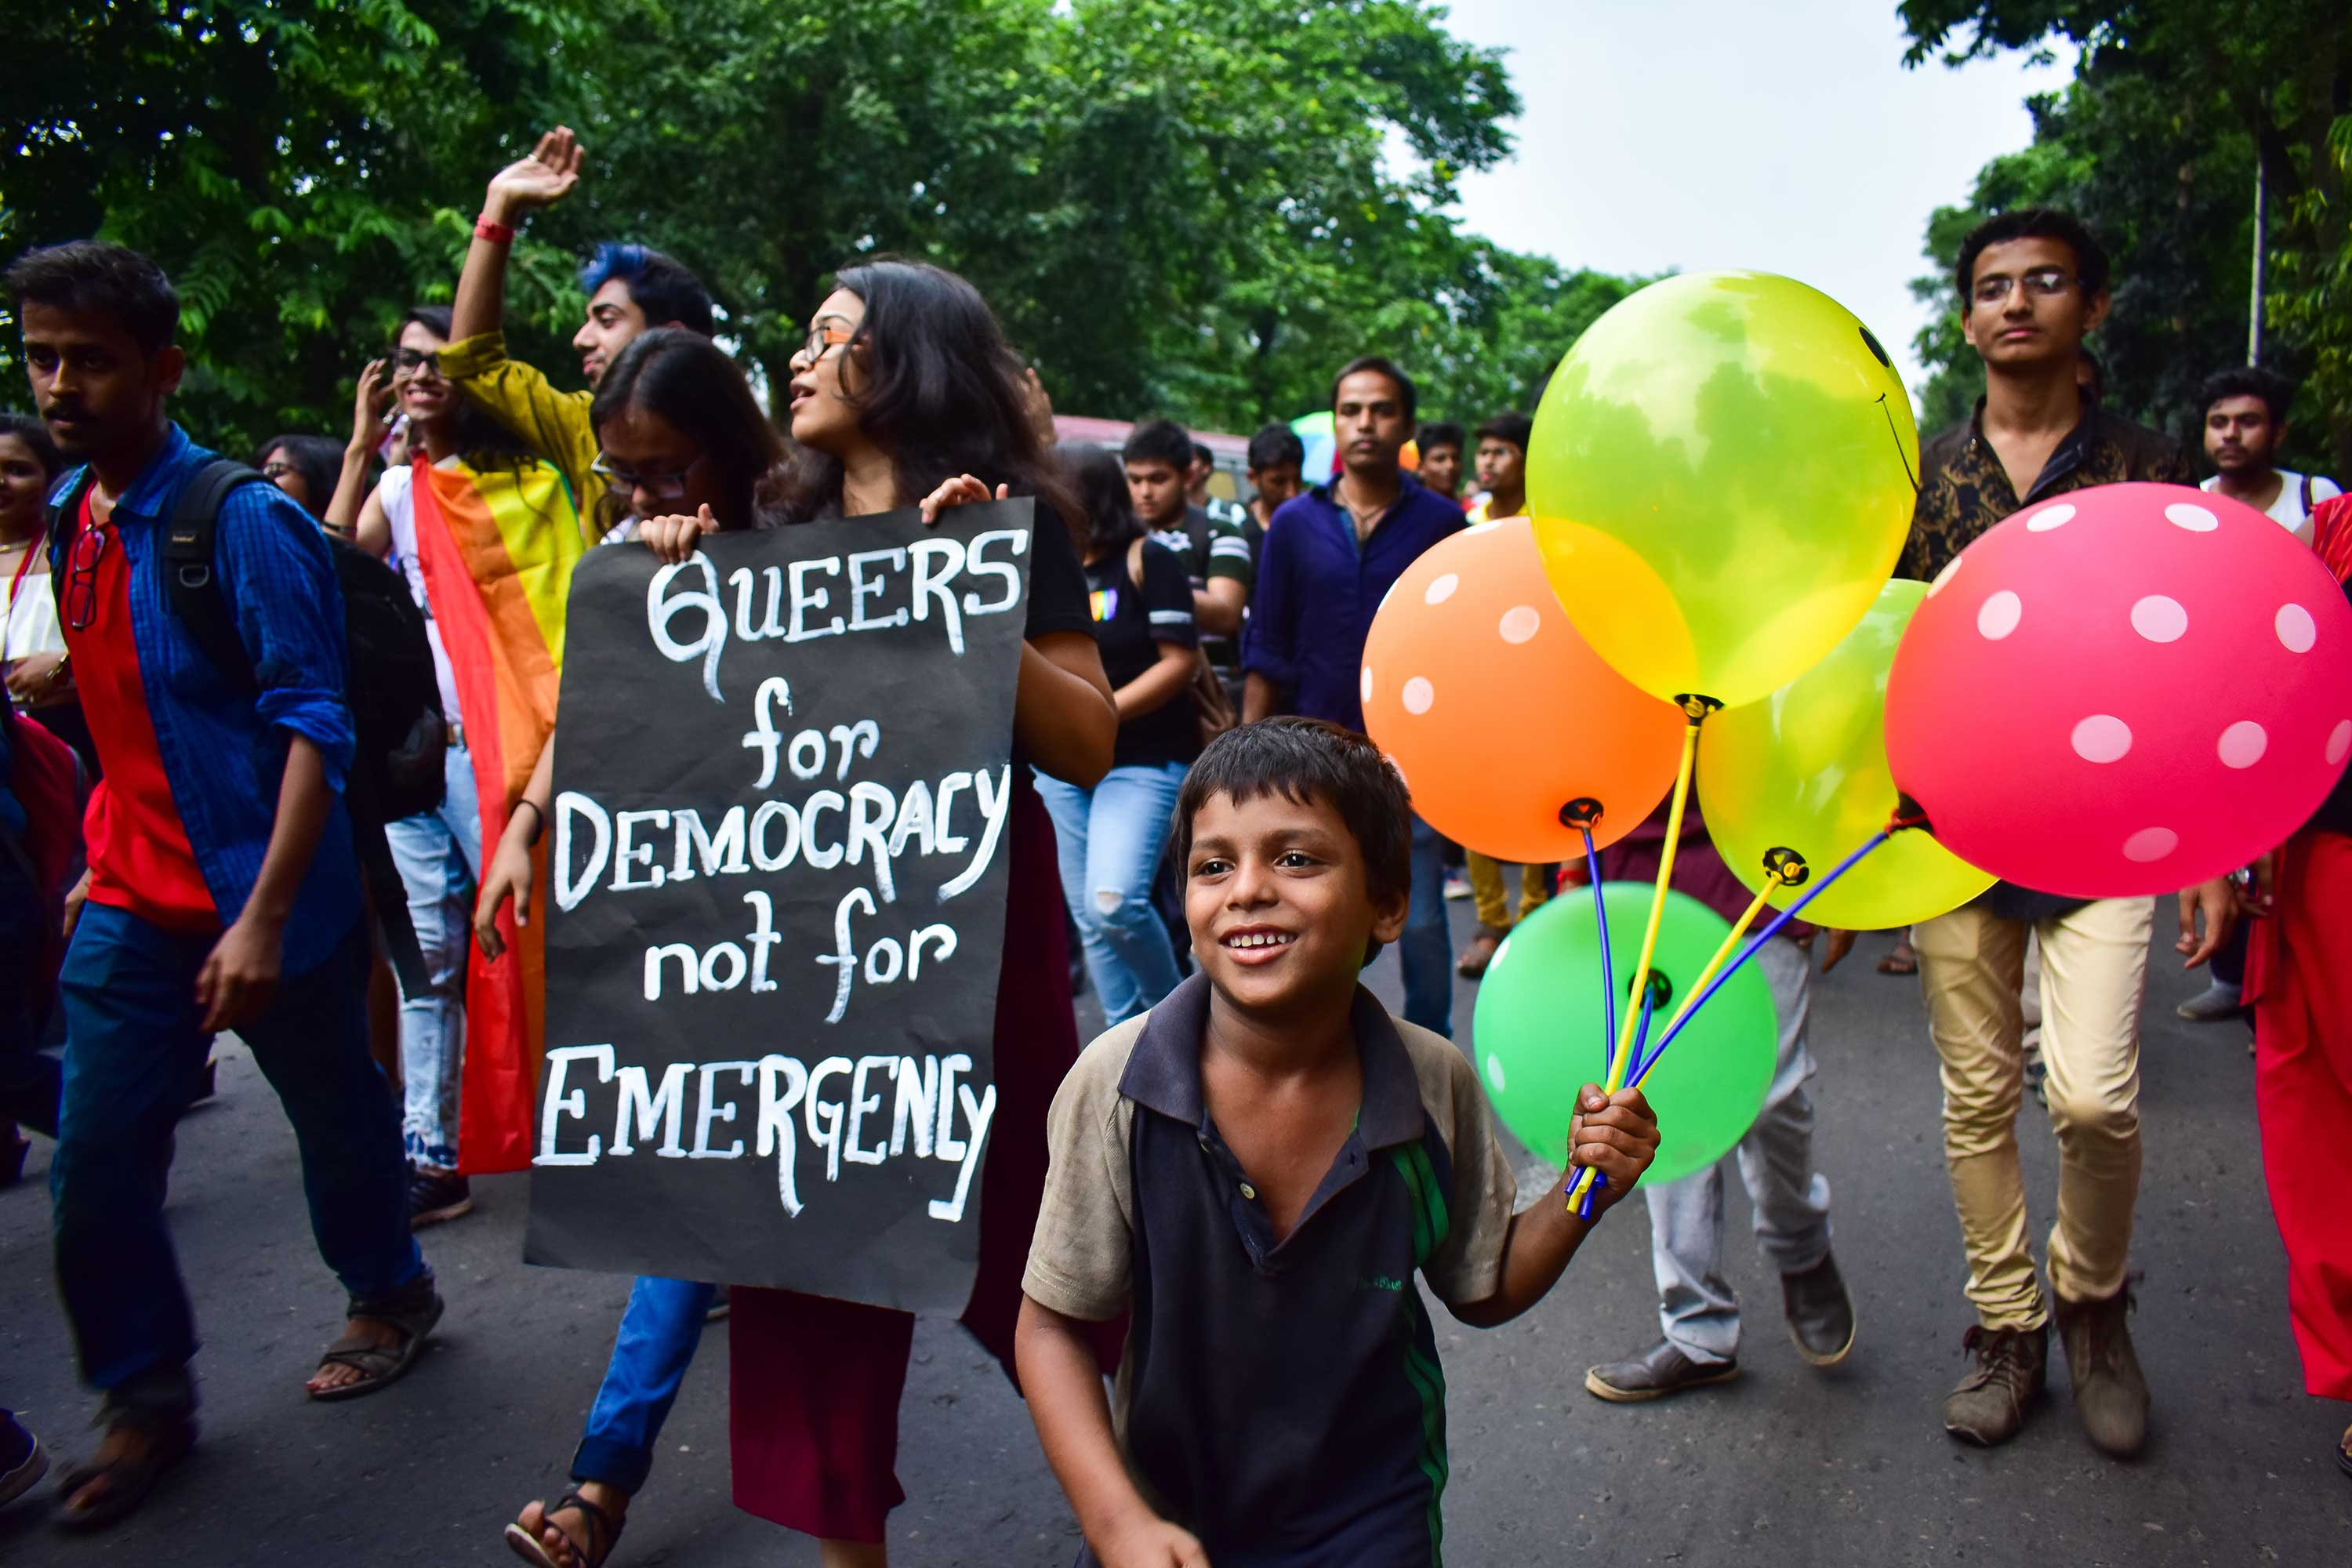 After Section 377 was ruled unconstitutional in 2018, Kolkata's LGBTQ community organized a victory parade. (Arpan Basuchowdhury)